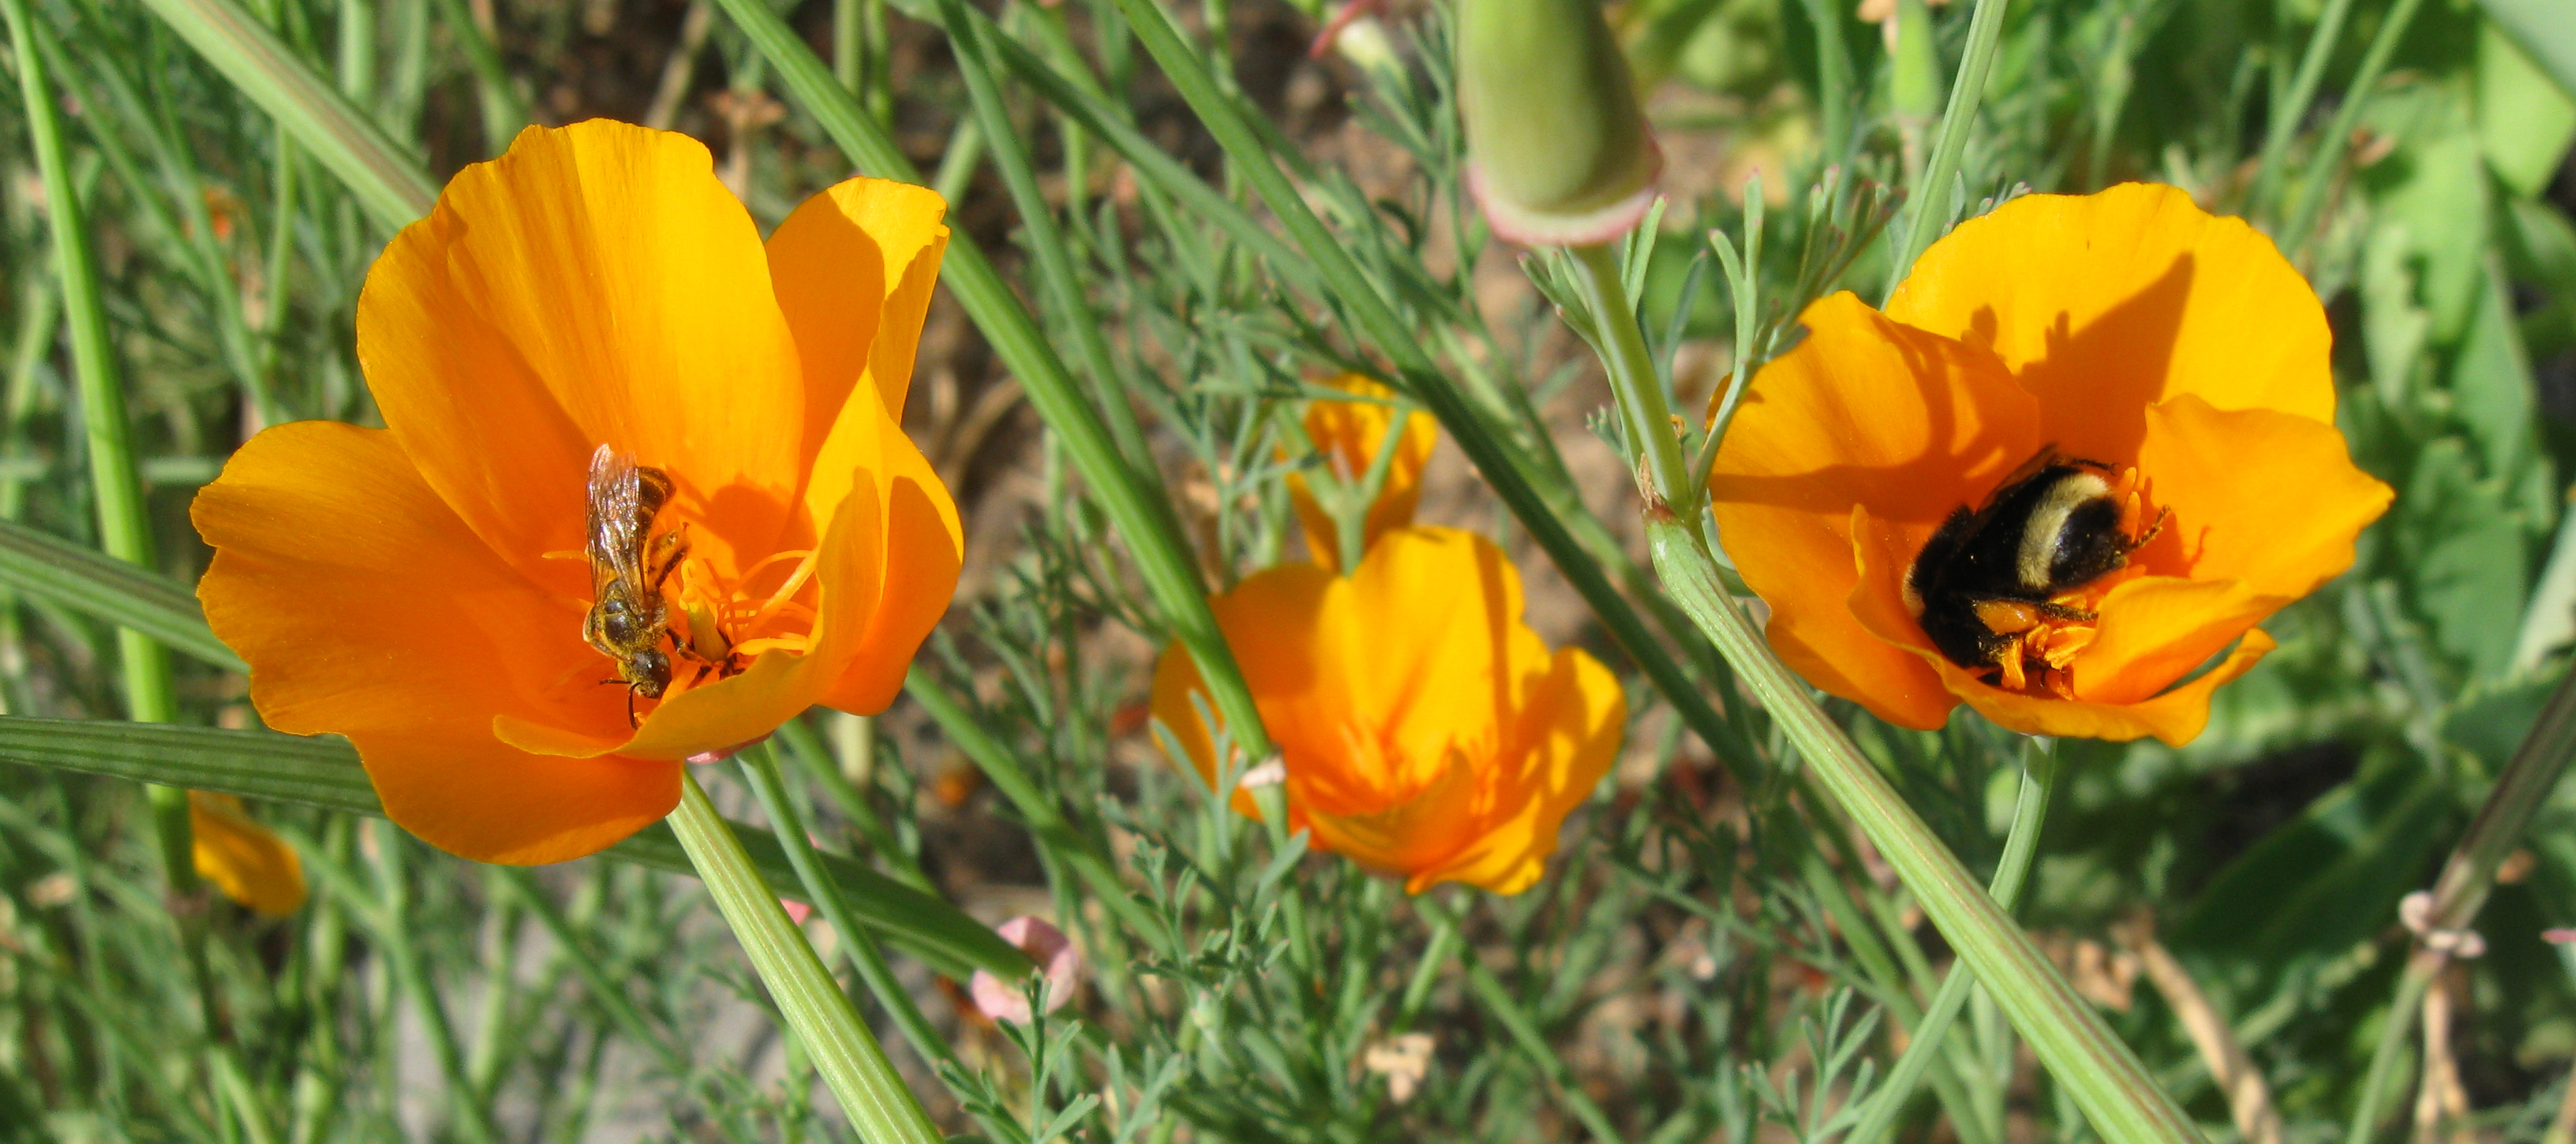 Three bright yellow-orange poppies are shown in a grassy area. The two poppies that are wide open and facing the camera each have a bee in the middle. On the left is a green, shiny bee. On the right is a large, primarily black, fuzzy bee.